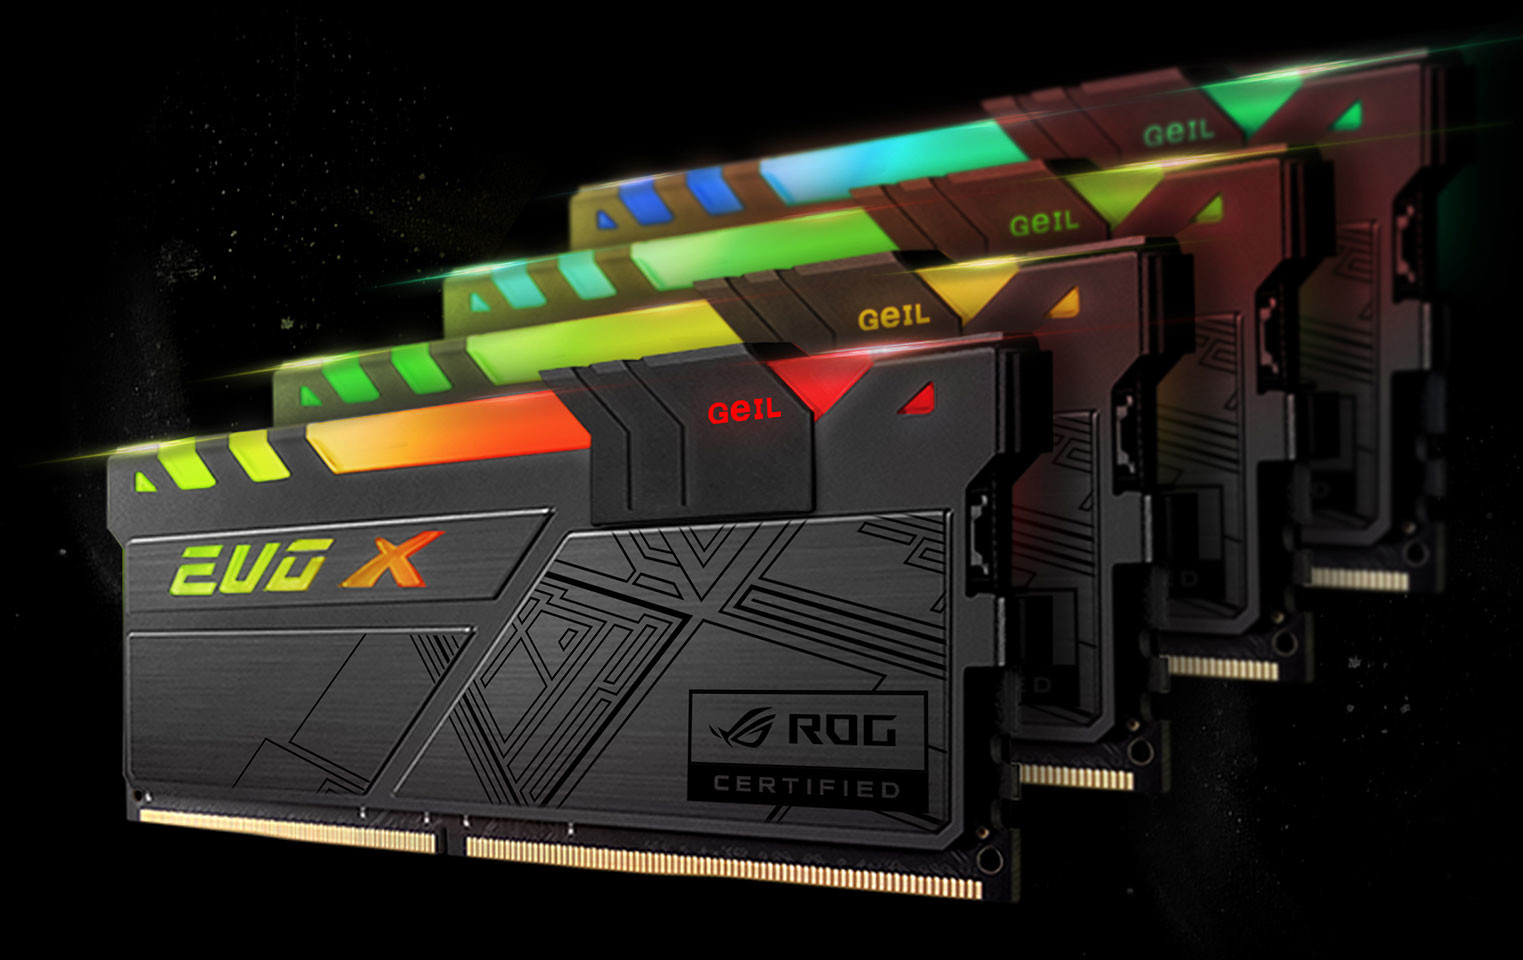 GeIL Announced World's First Fully RGB DDR4 Memory with ASUS ROG